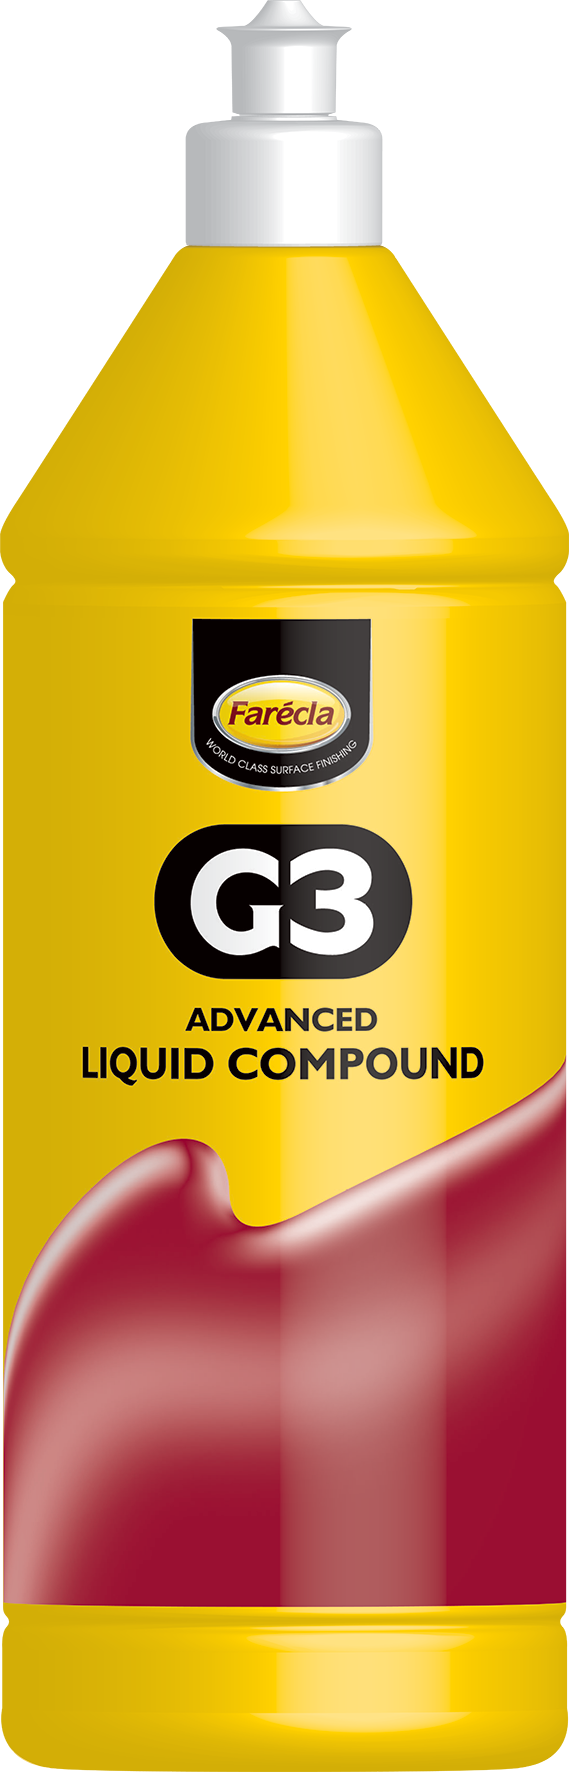 ADVANCED G3 LIQUID 1400G - Galdes & Mamo